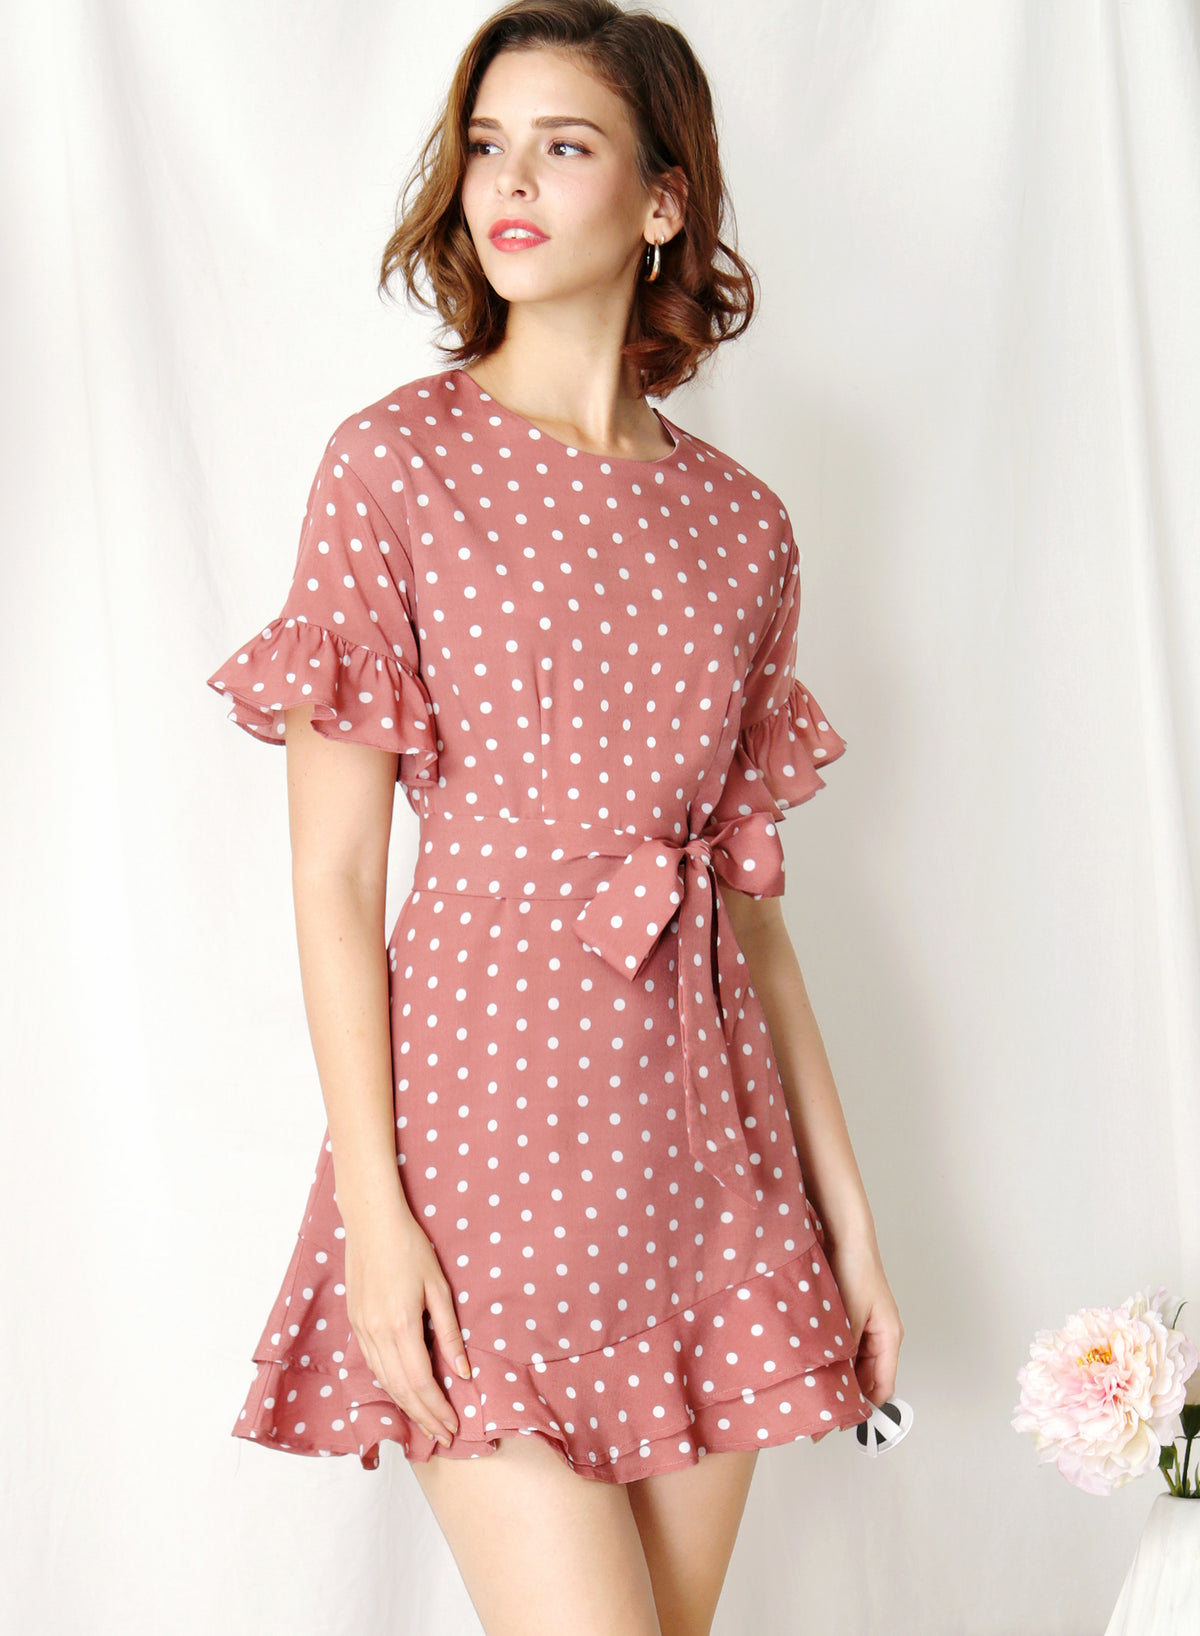 Daylight Ruffle Edge Dress (Pink Polka) at $ 43.50 only sold at And Well Dressed Online Fashion Store Singapore